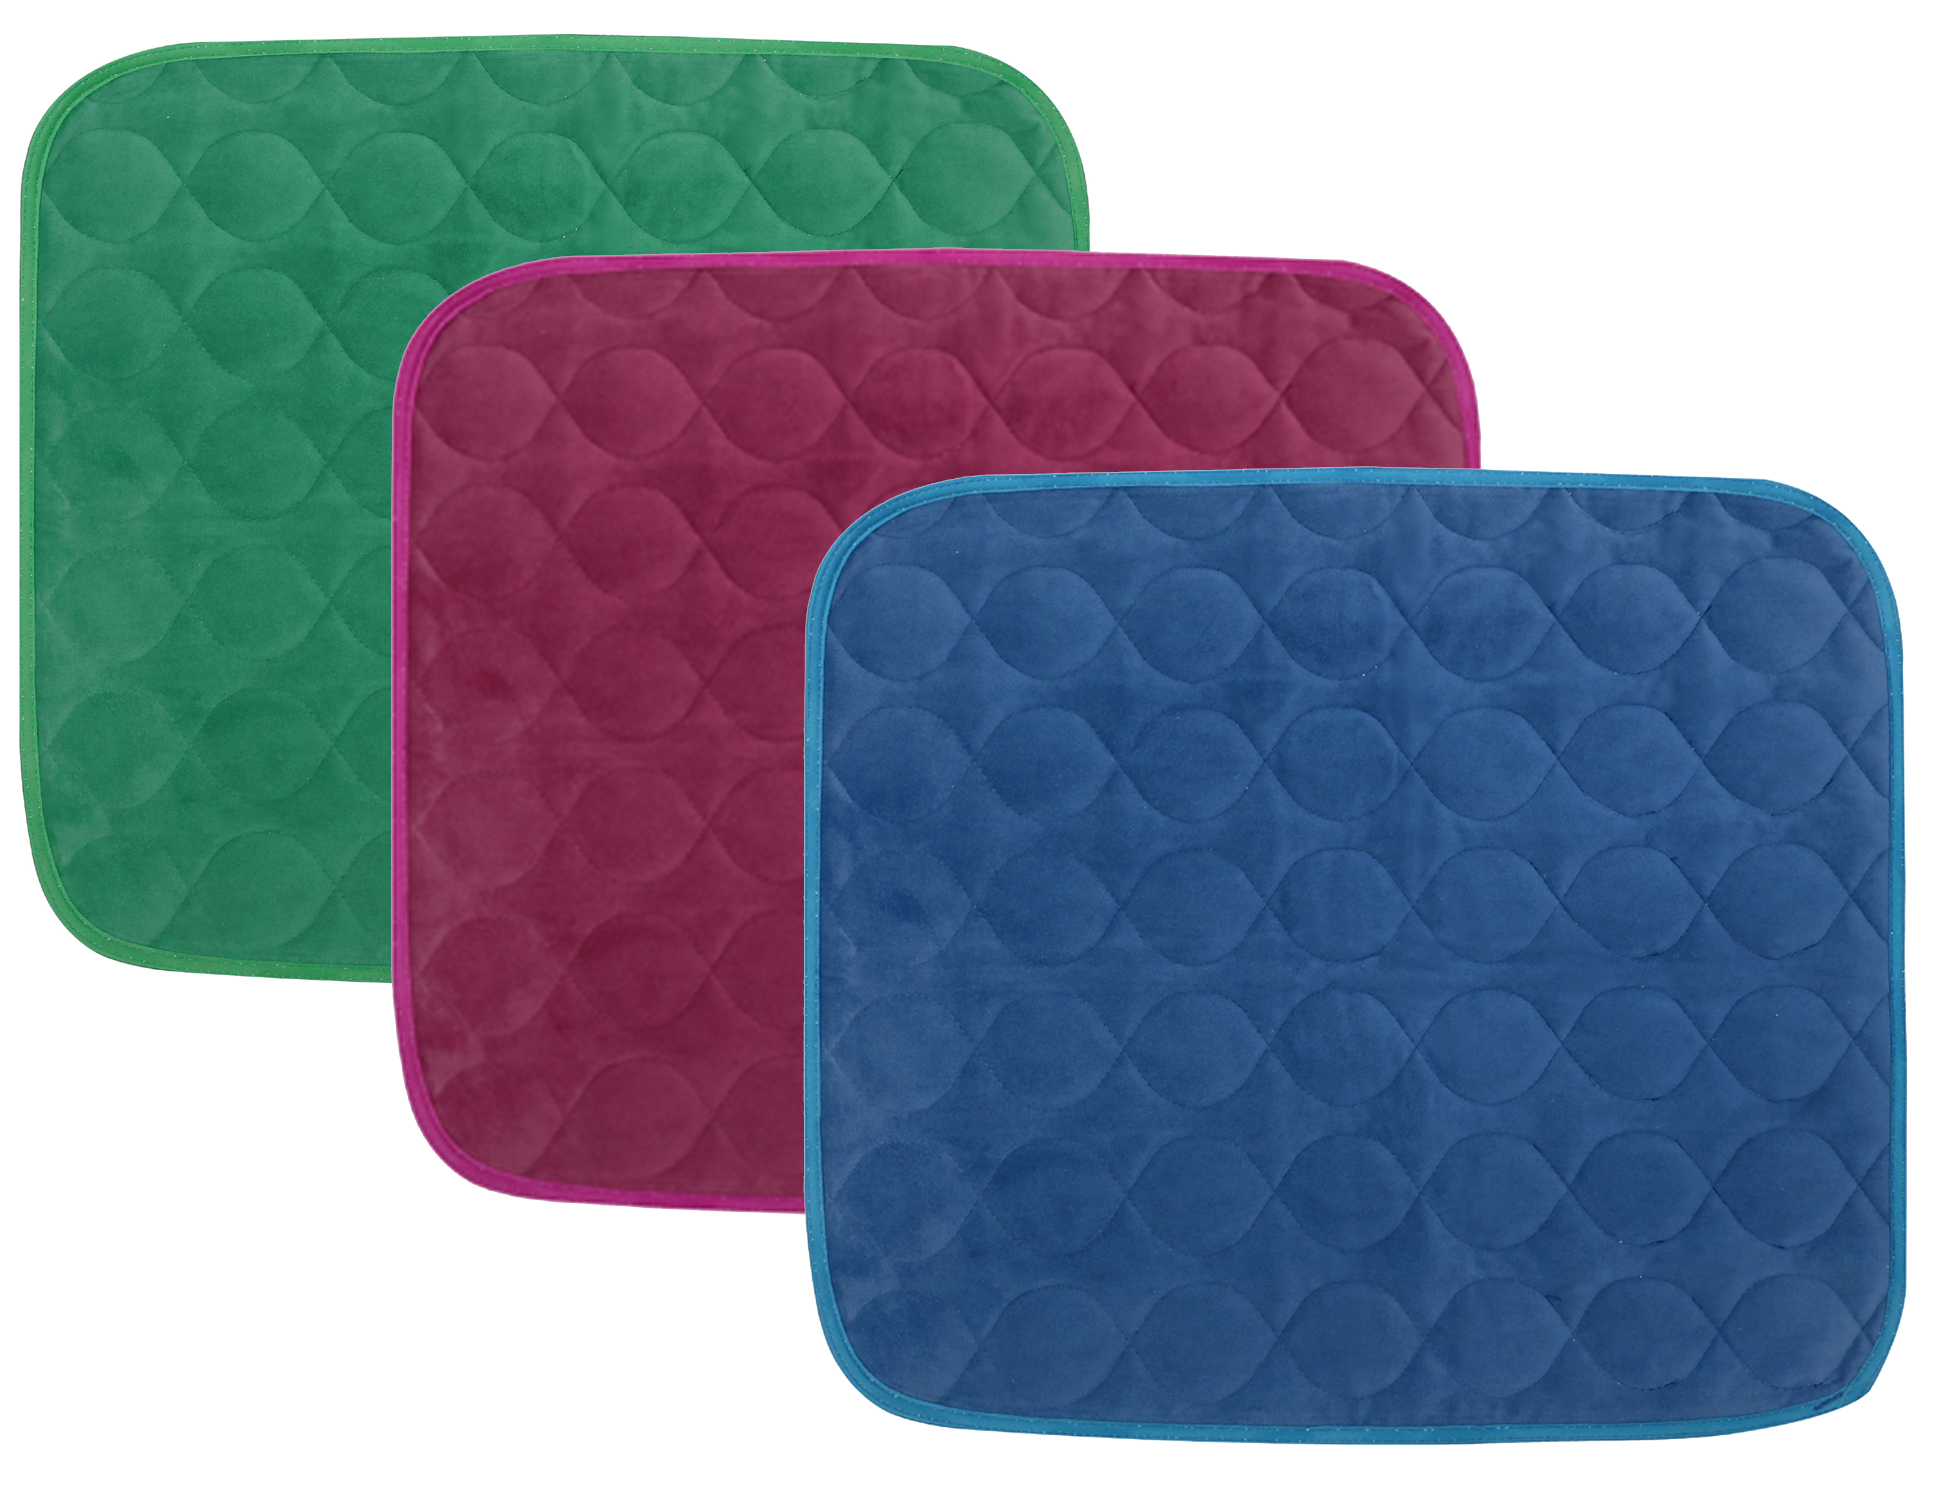 chair covers for incontinence red leather wingback wholesale washable bed pads underpads